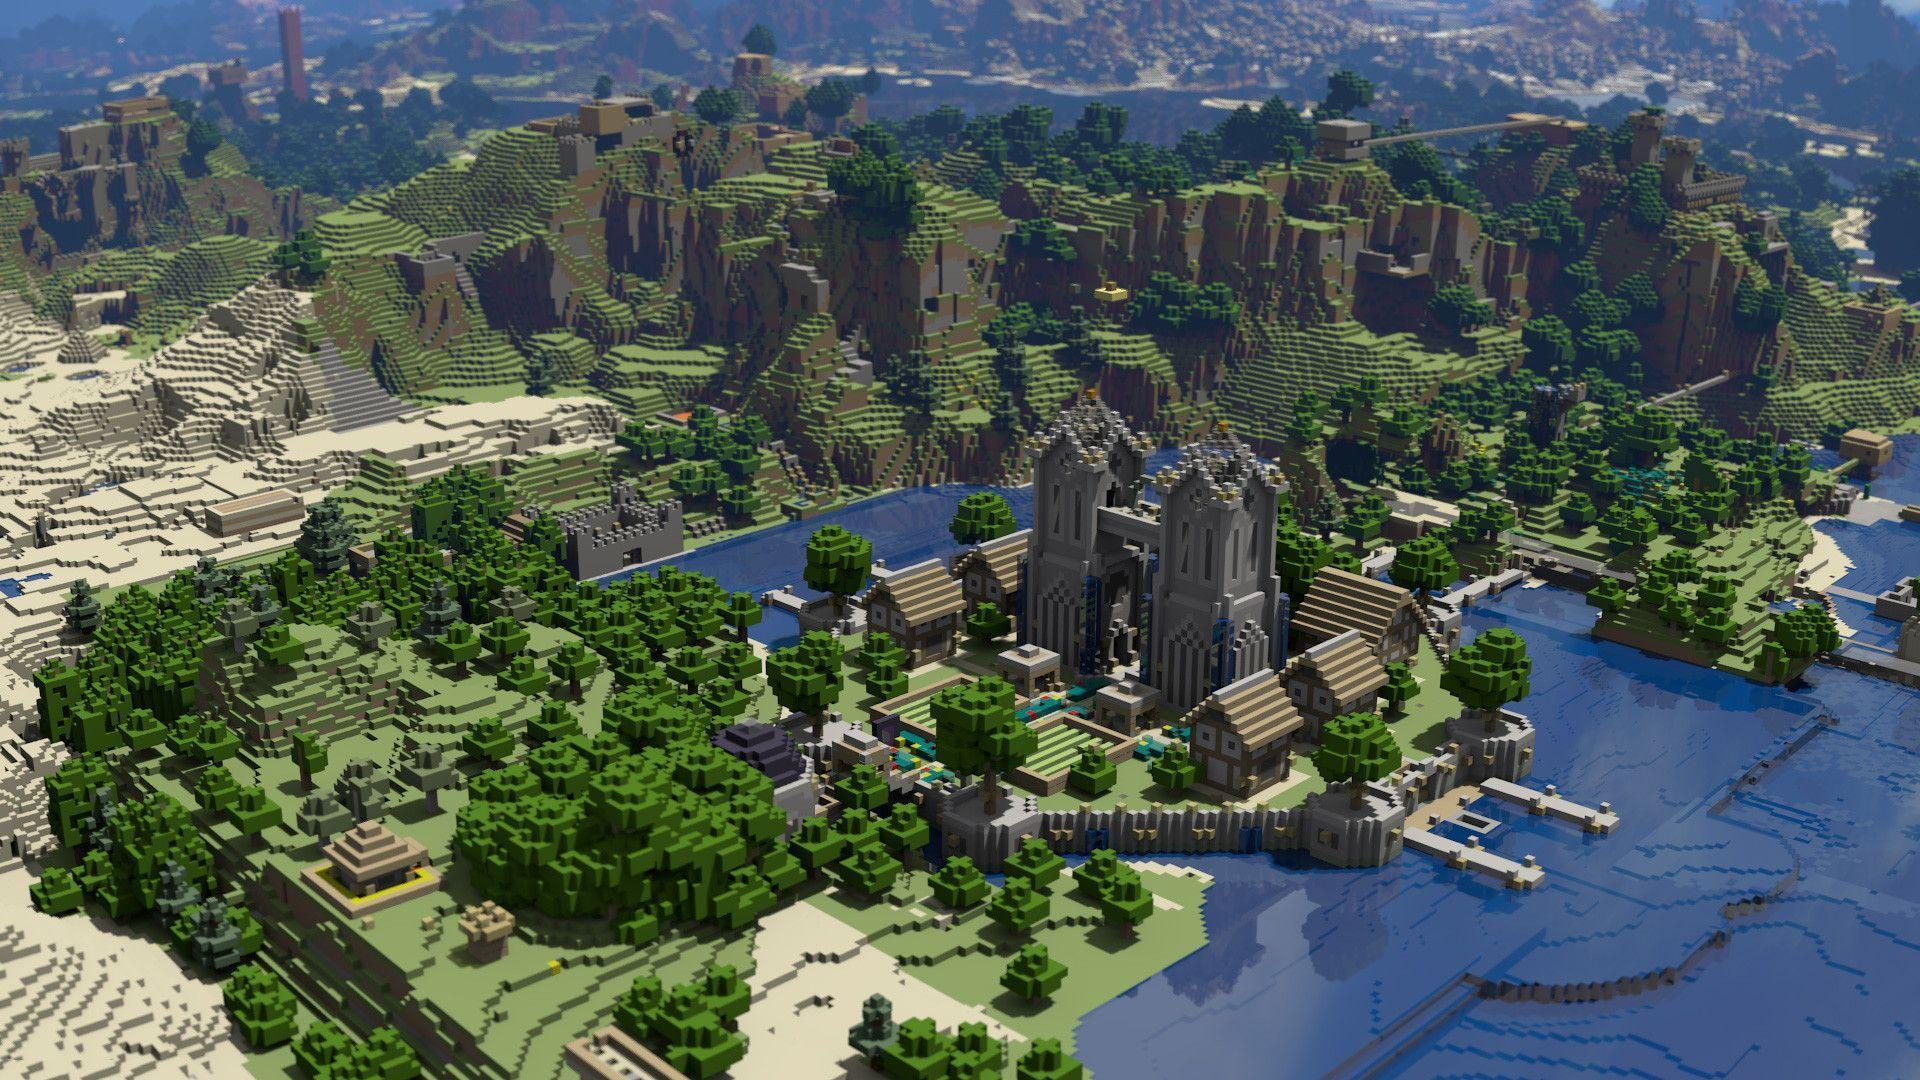 Minecraft Img For > Minecraft Wallpapers Hd 1920x1080